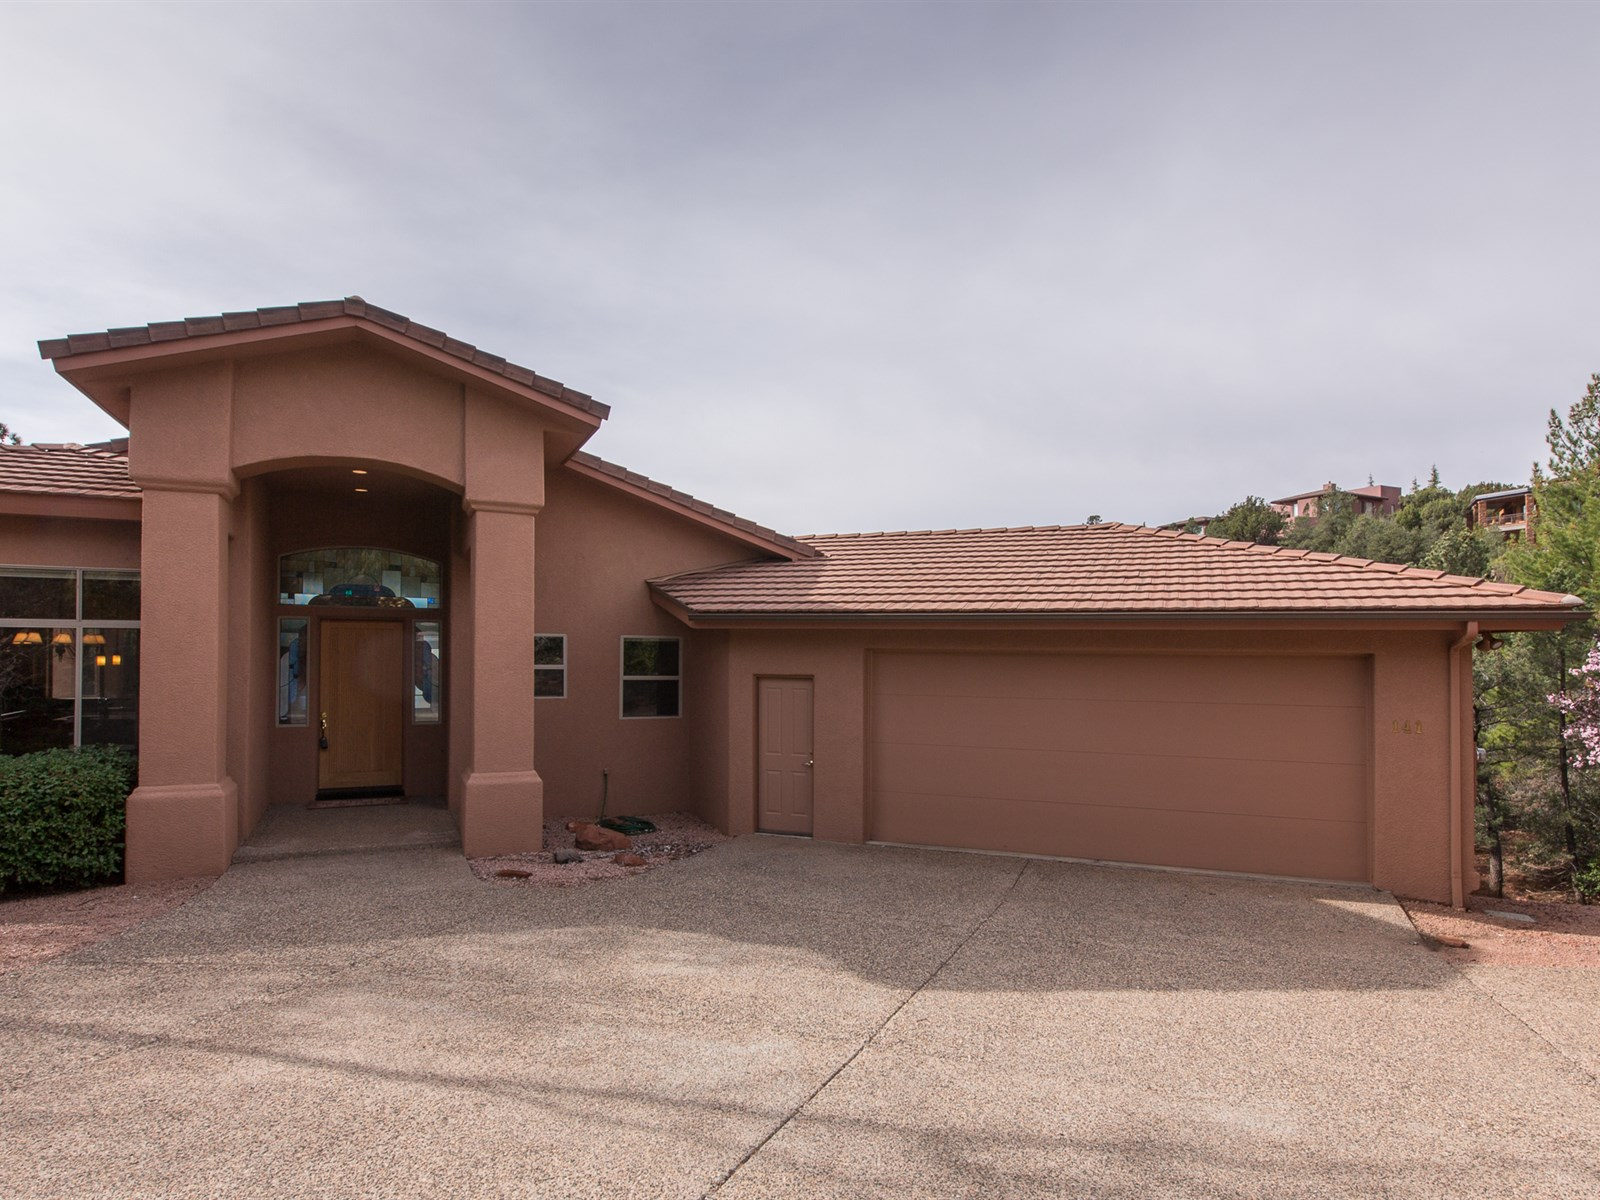 Single Family Home for Sale at Beauty, Serenity, and Privacy 141 N Palisades DR Sedona, Arizona 86336 United States